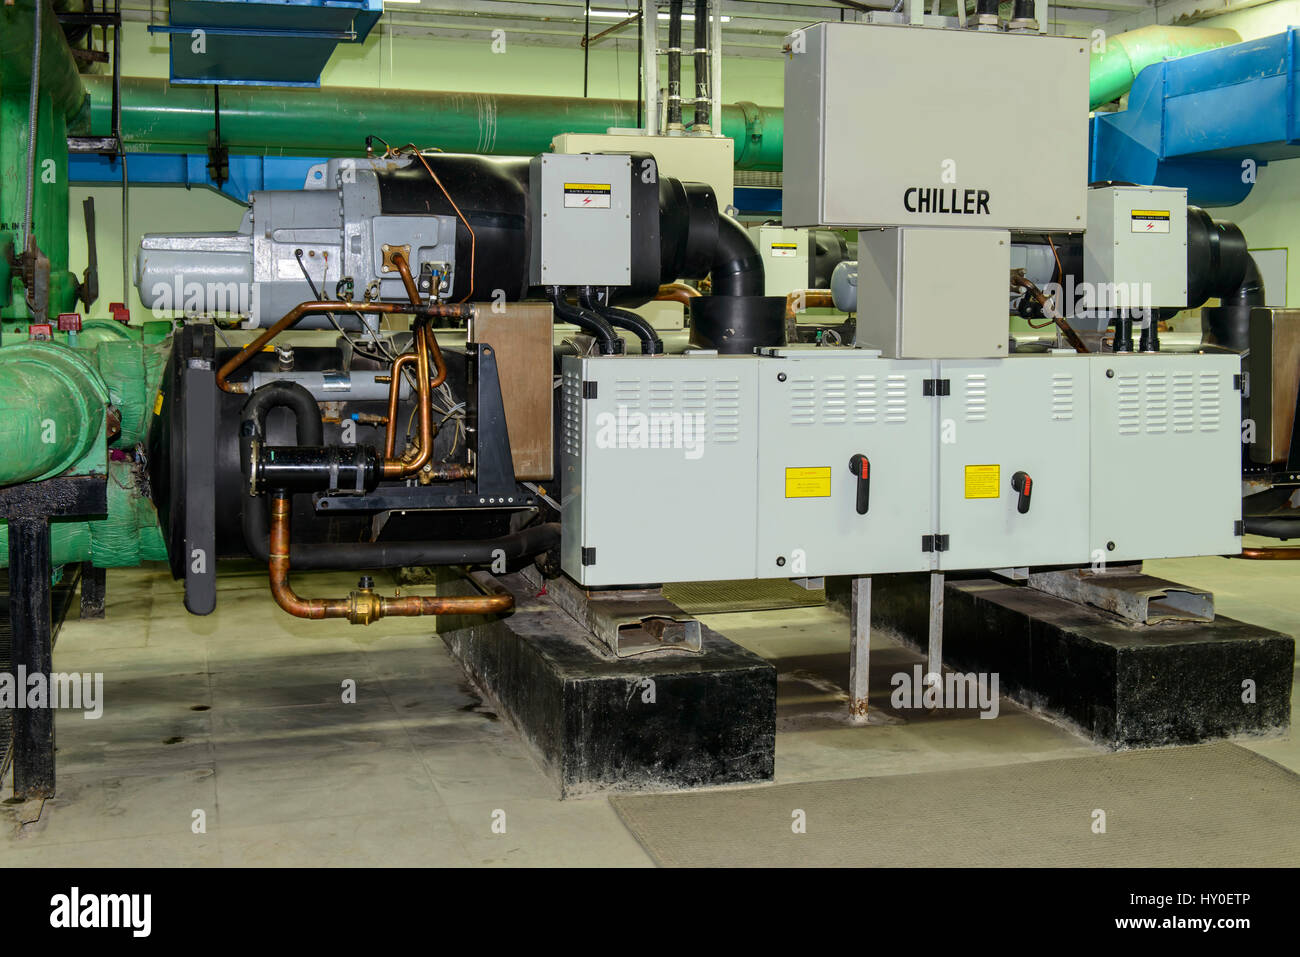 Chiller pump setup, india, asia - Stock Image